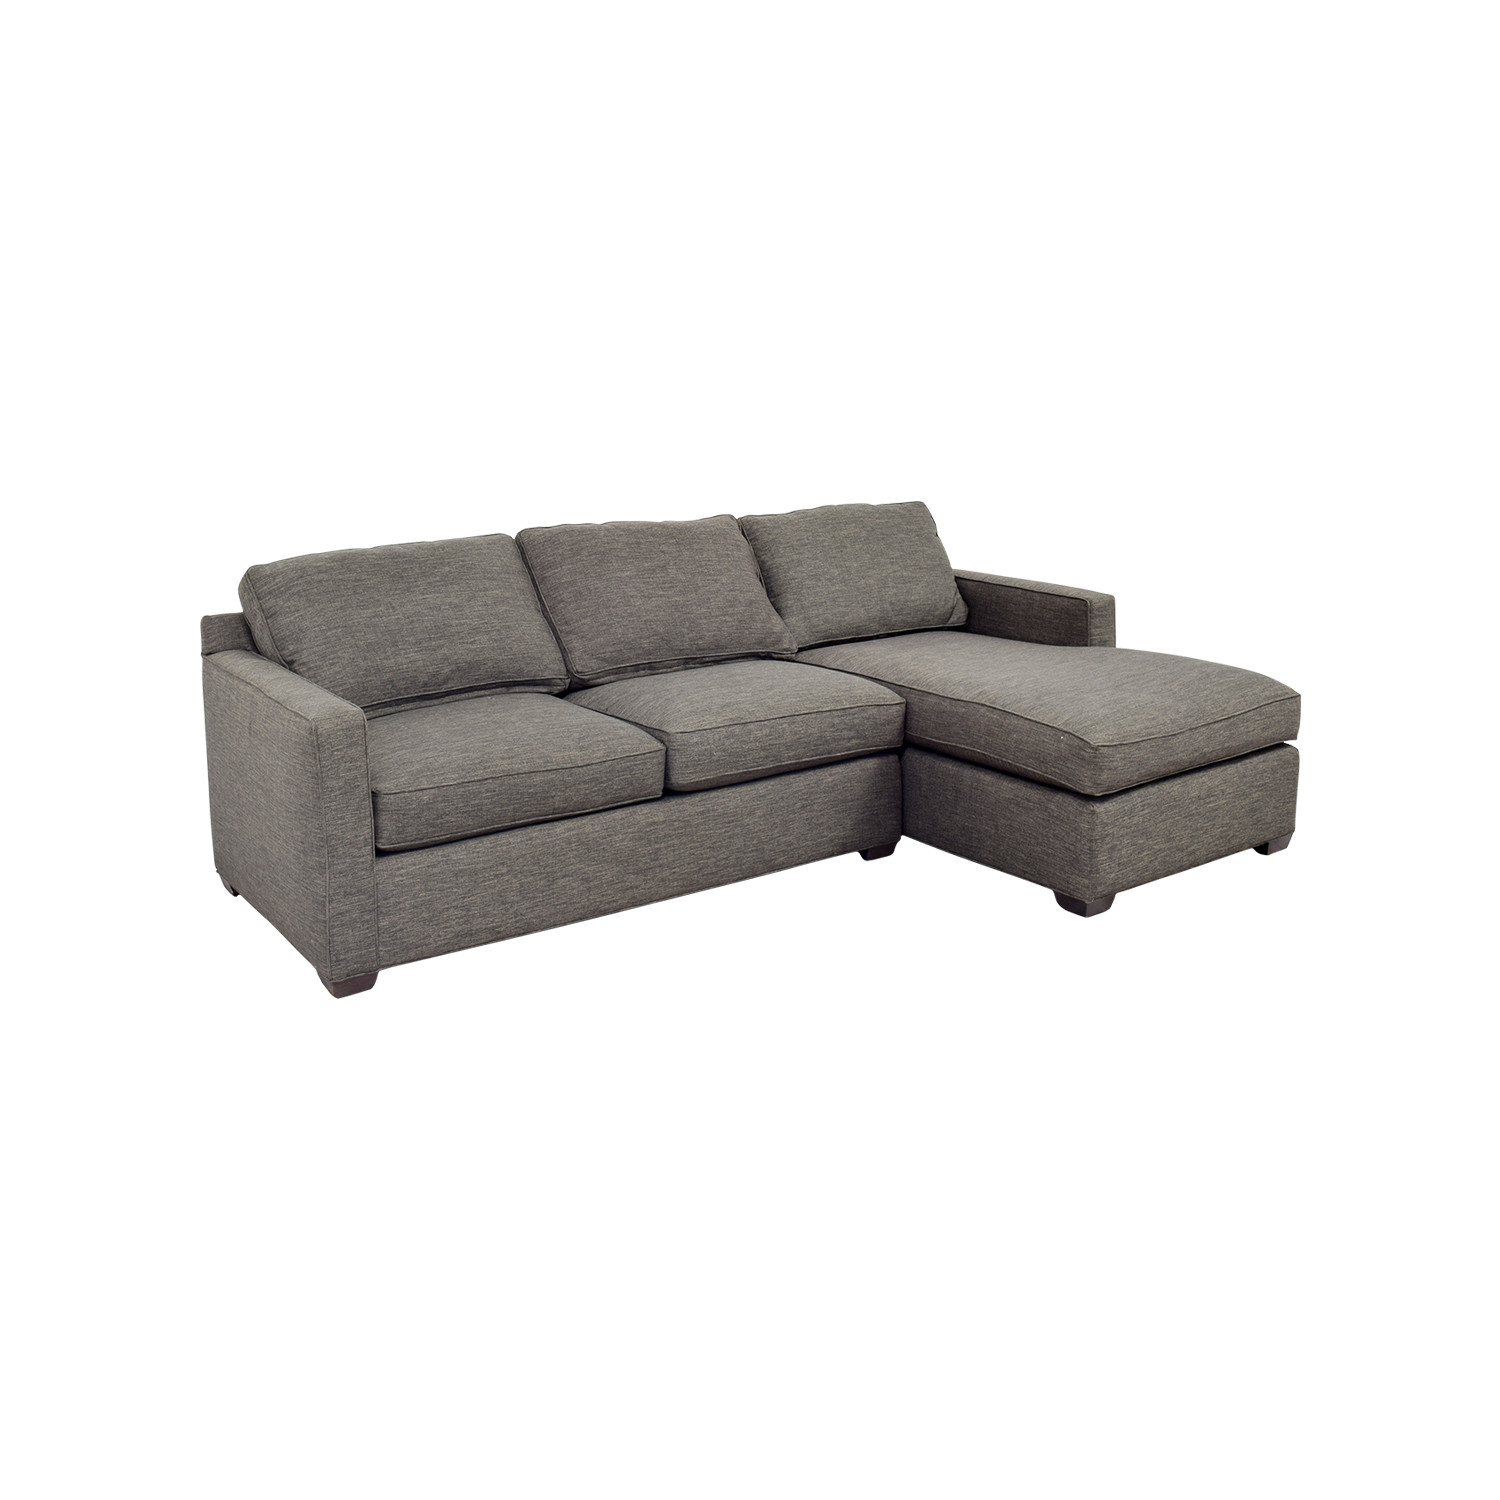 crate and barrel davis sofa leather best steam cleaner for 63 off grey